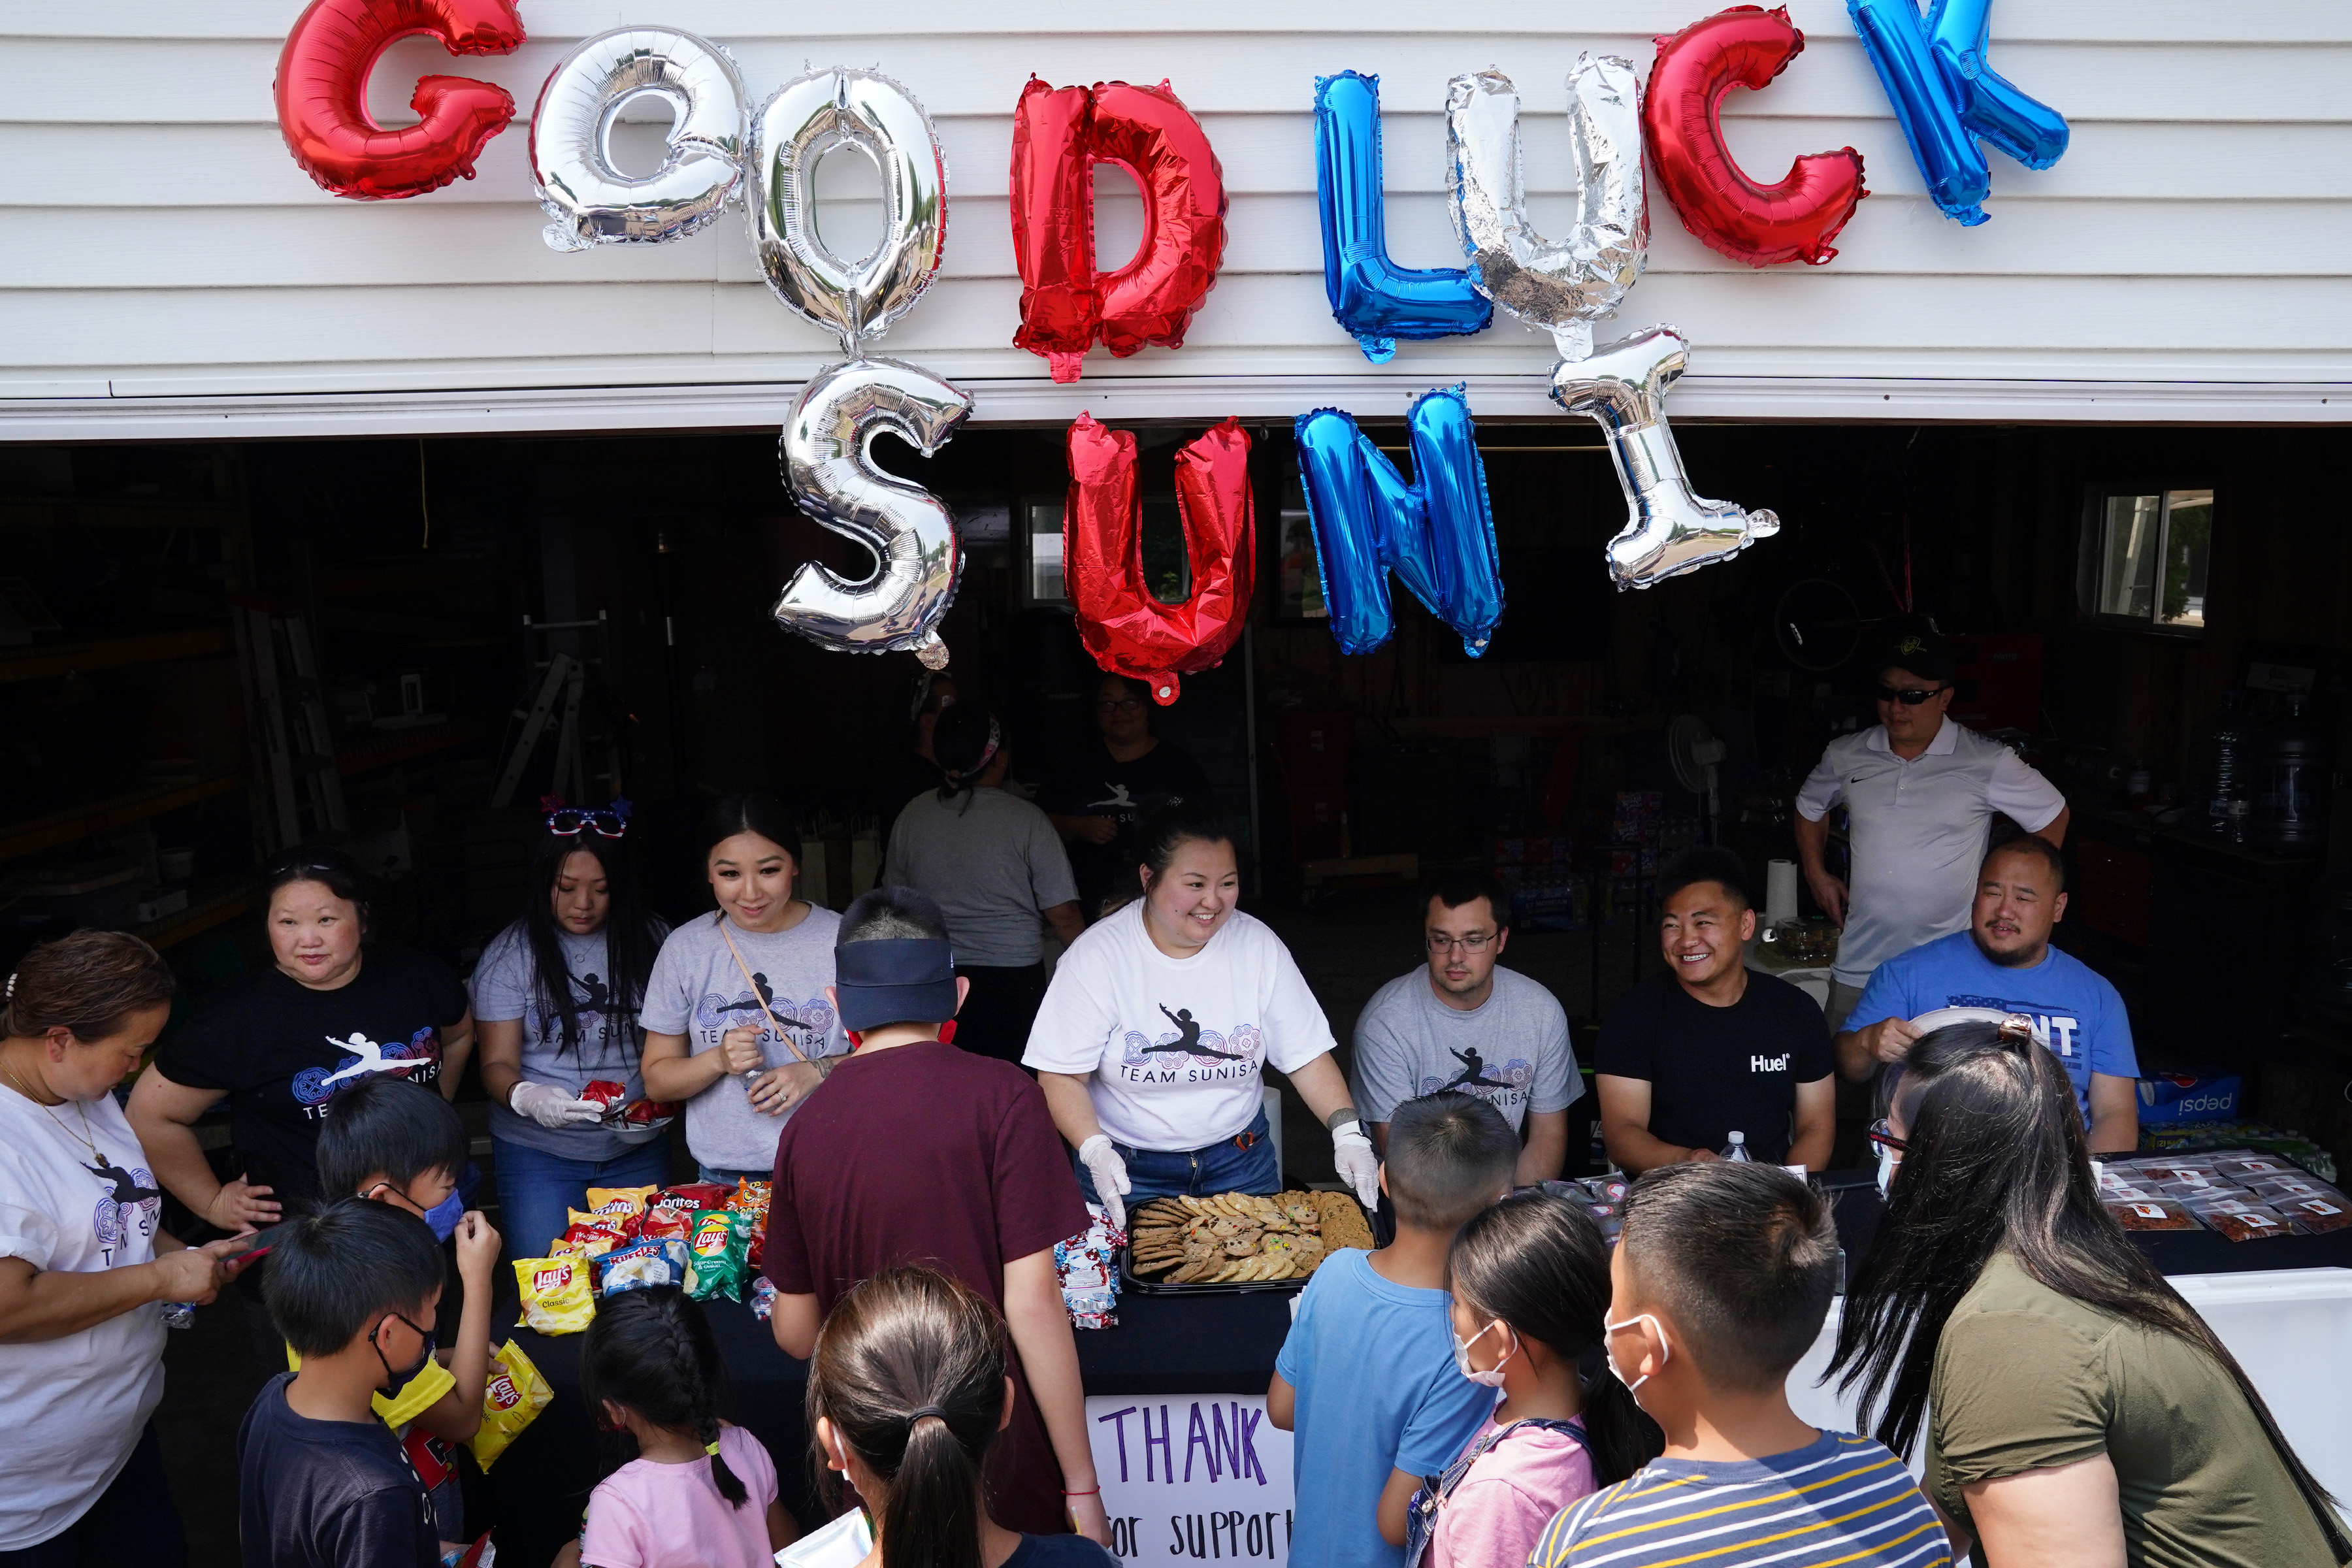 Friends and family of Olympic gymnast Suni Lee served drinks and snacks as they hosted a party in her honor on July 3.